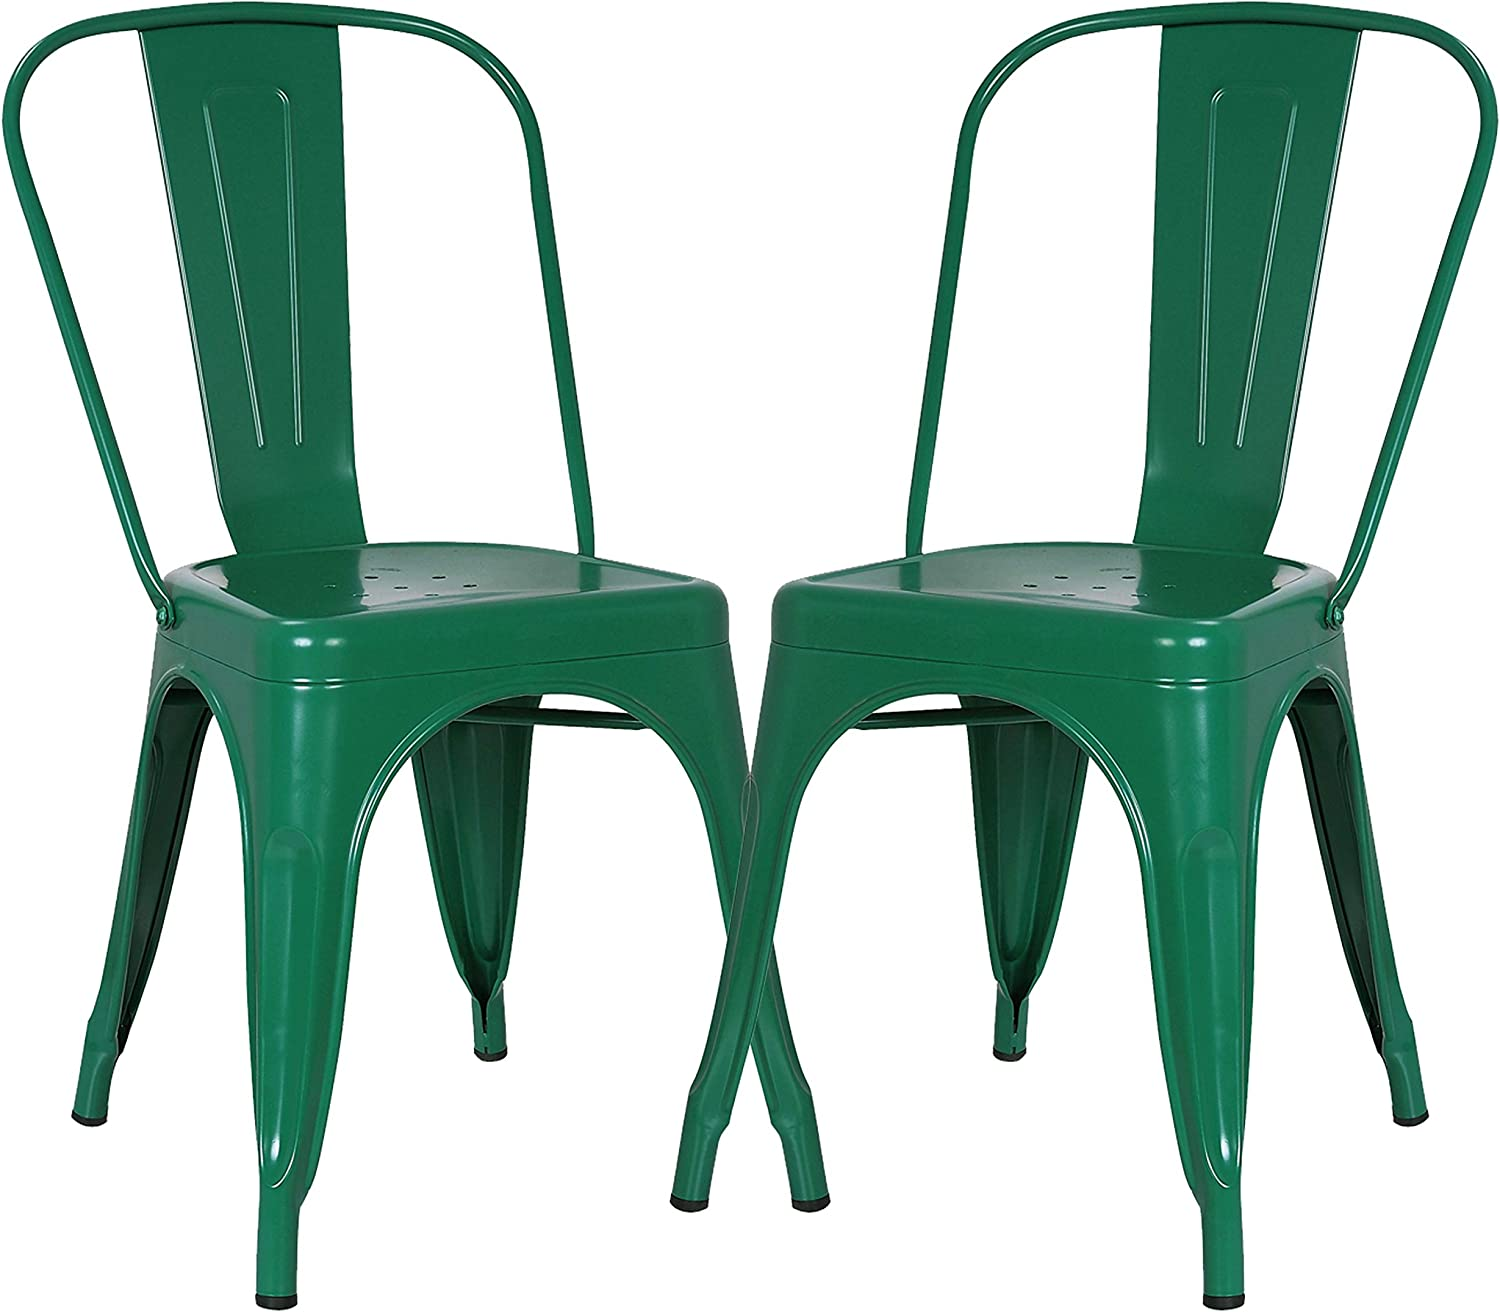 Poly and Bark Trattoria Side Chair in Dark Green (Set of 2)